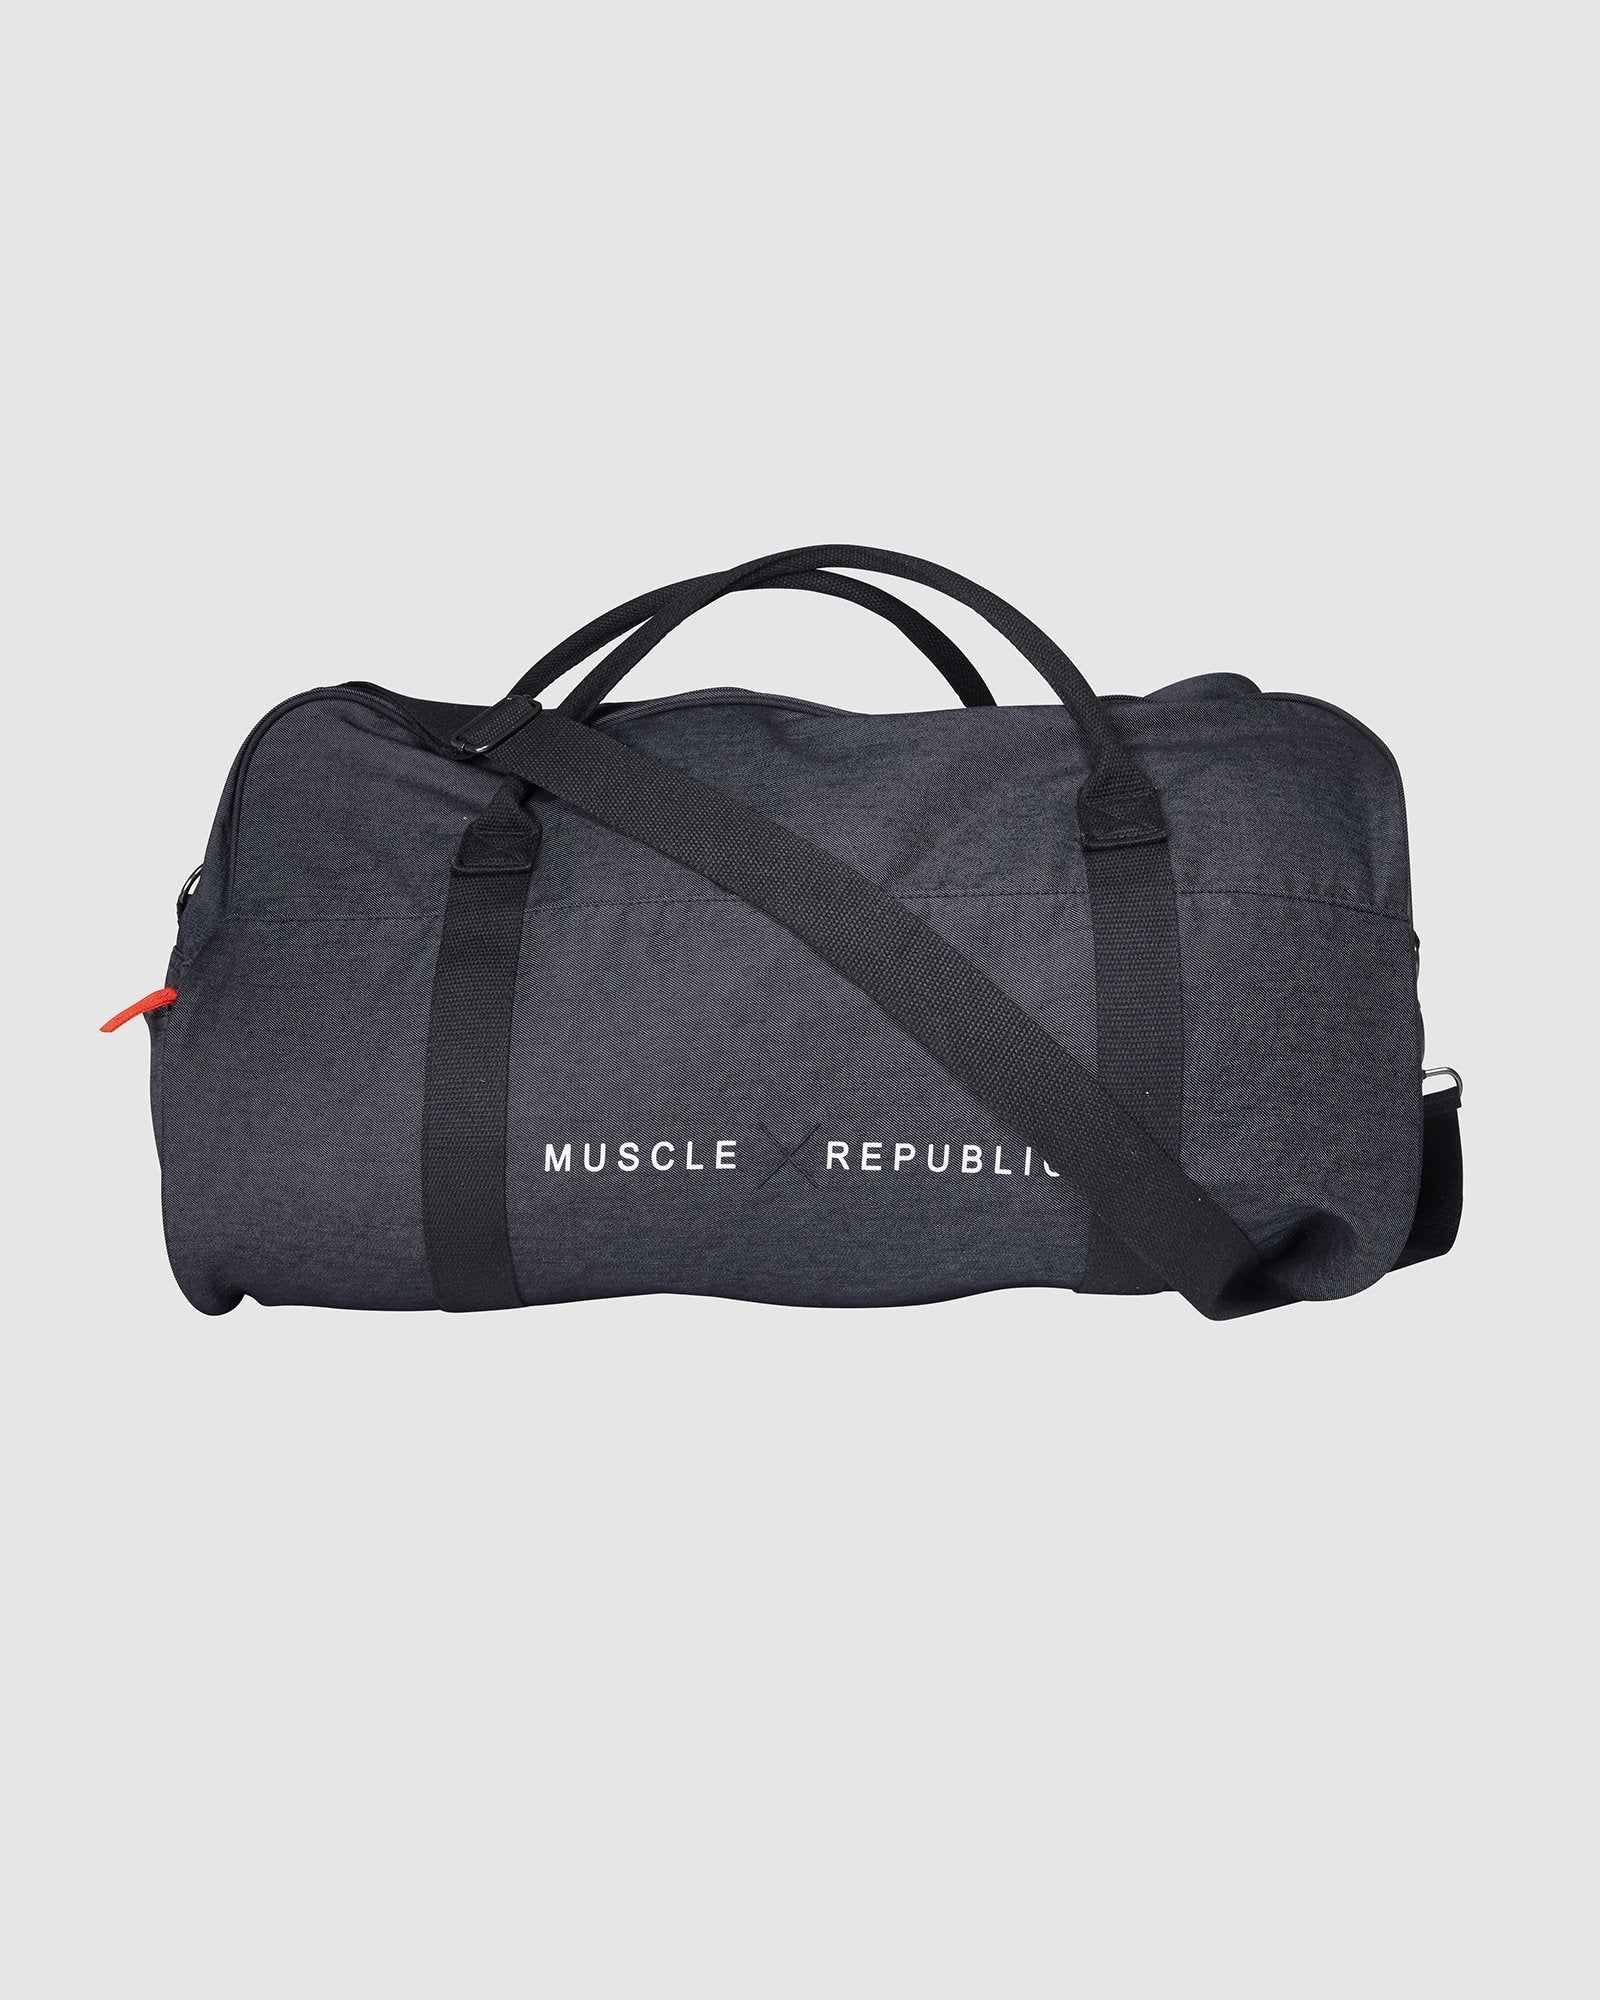 Muscle Republic Duffel Bag - Black